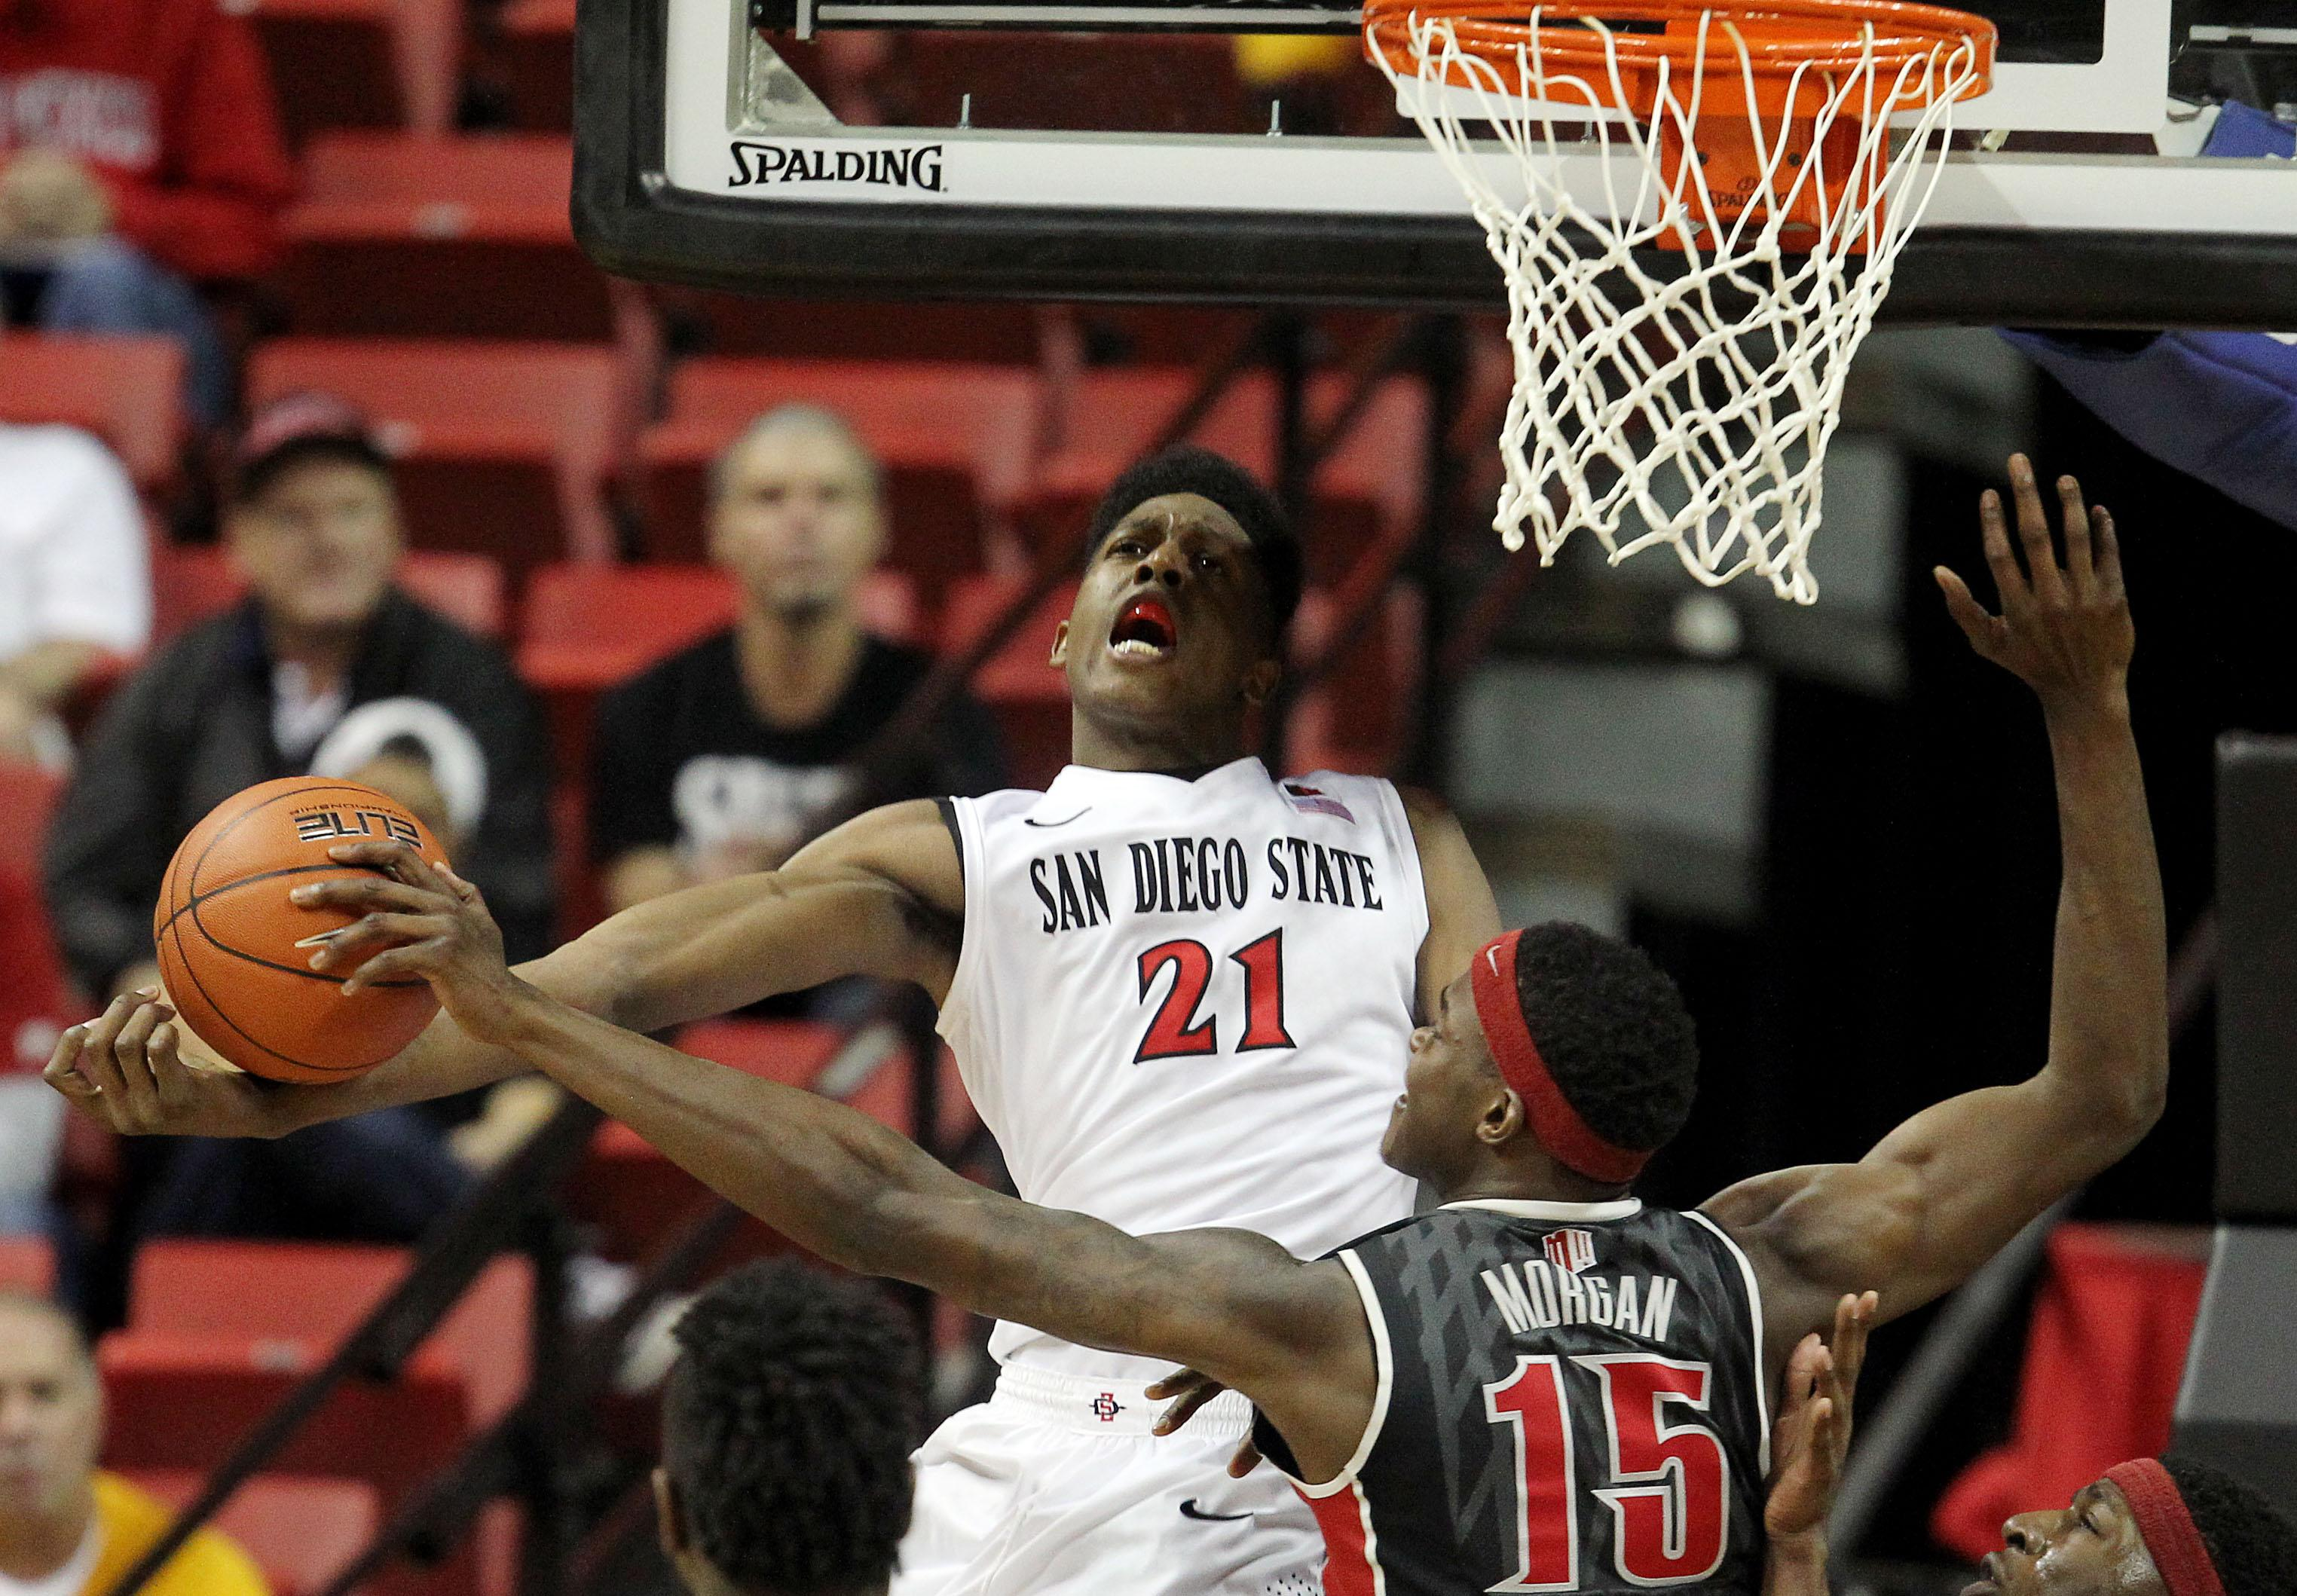 Malik Pope makes a wise decision to return to San Diego State